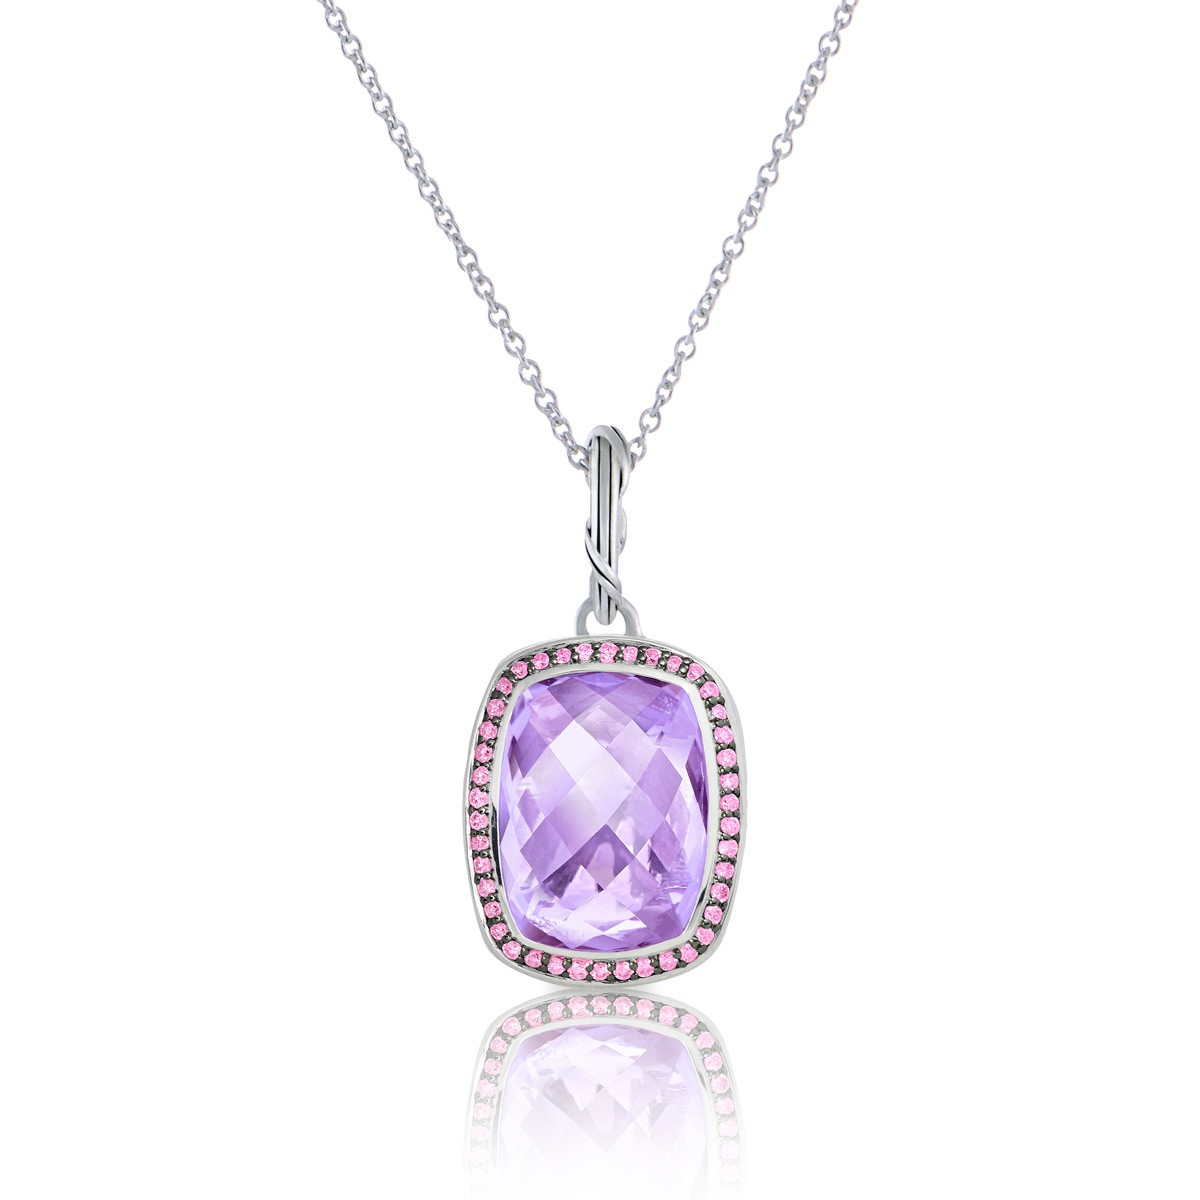 Fantasies Lavender Amethyst Halo Pendant Necklace in sterling silver with pink sapphires